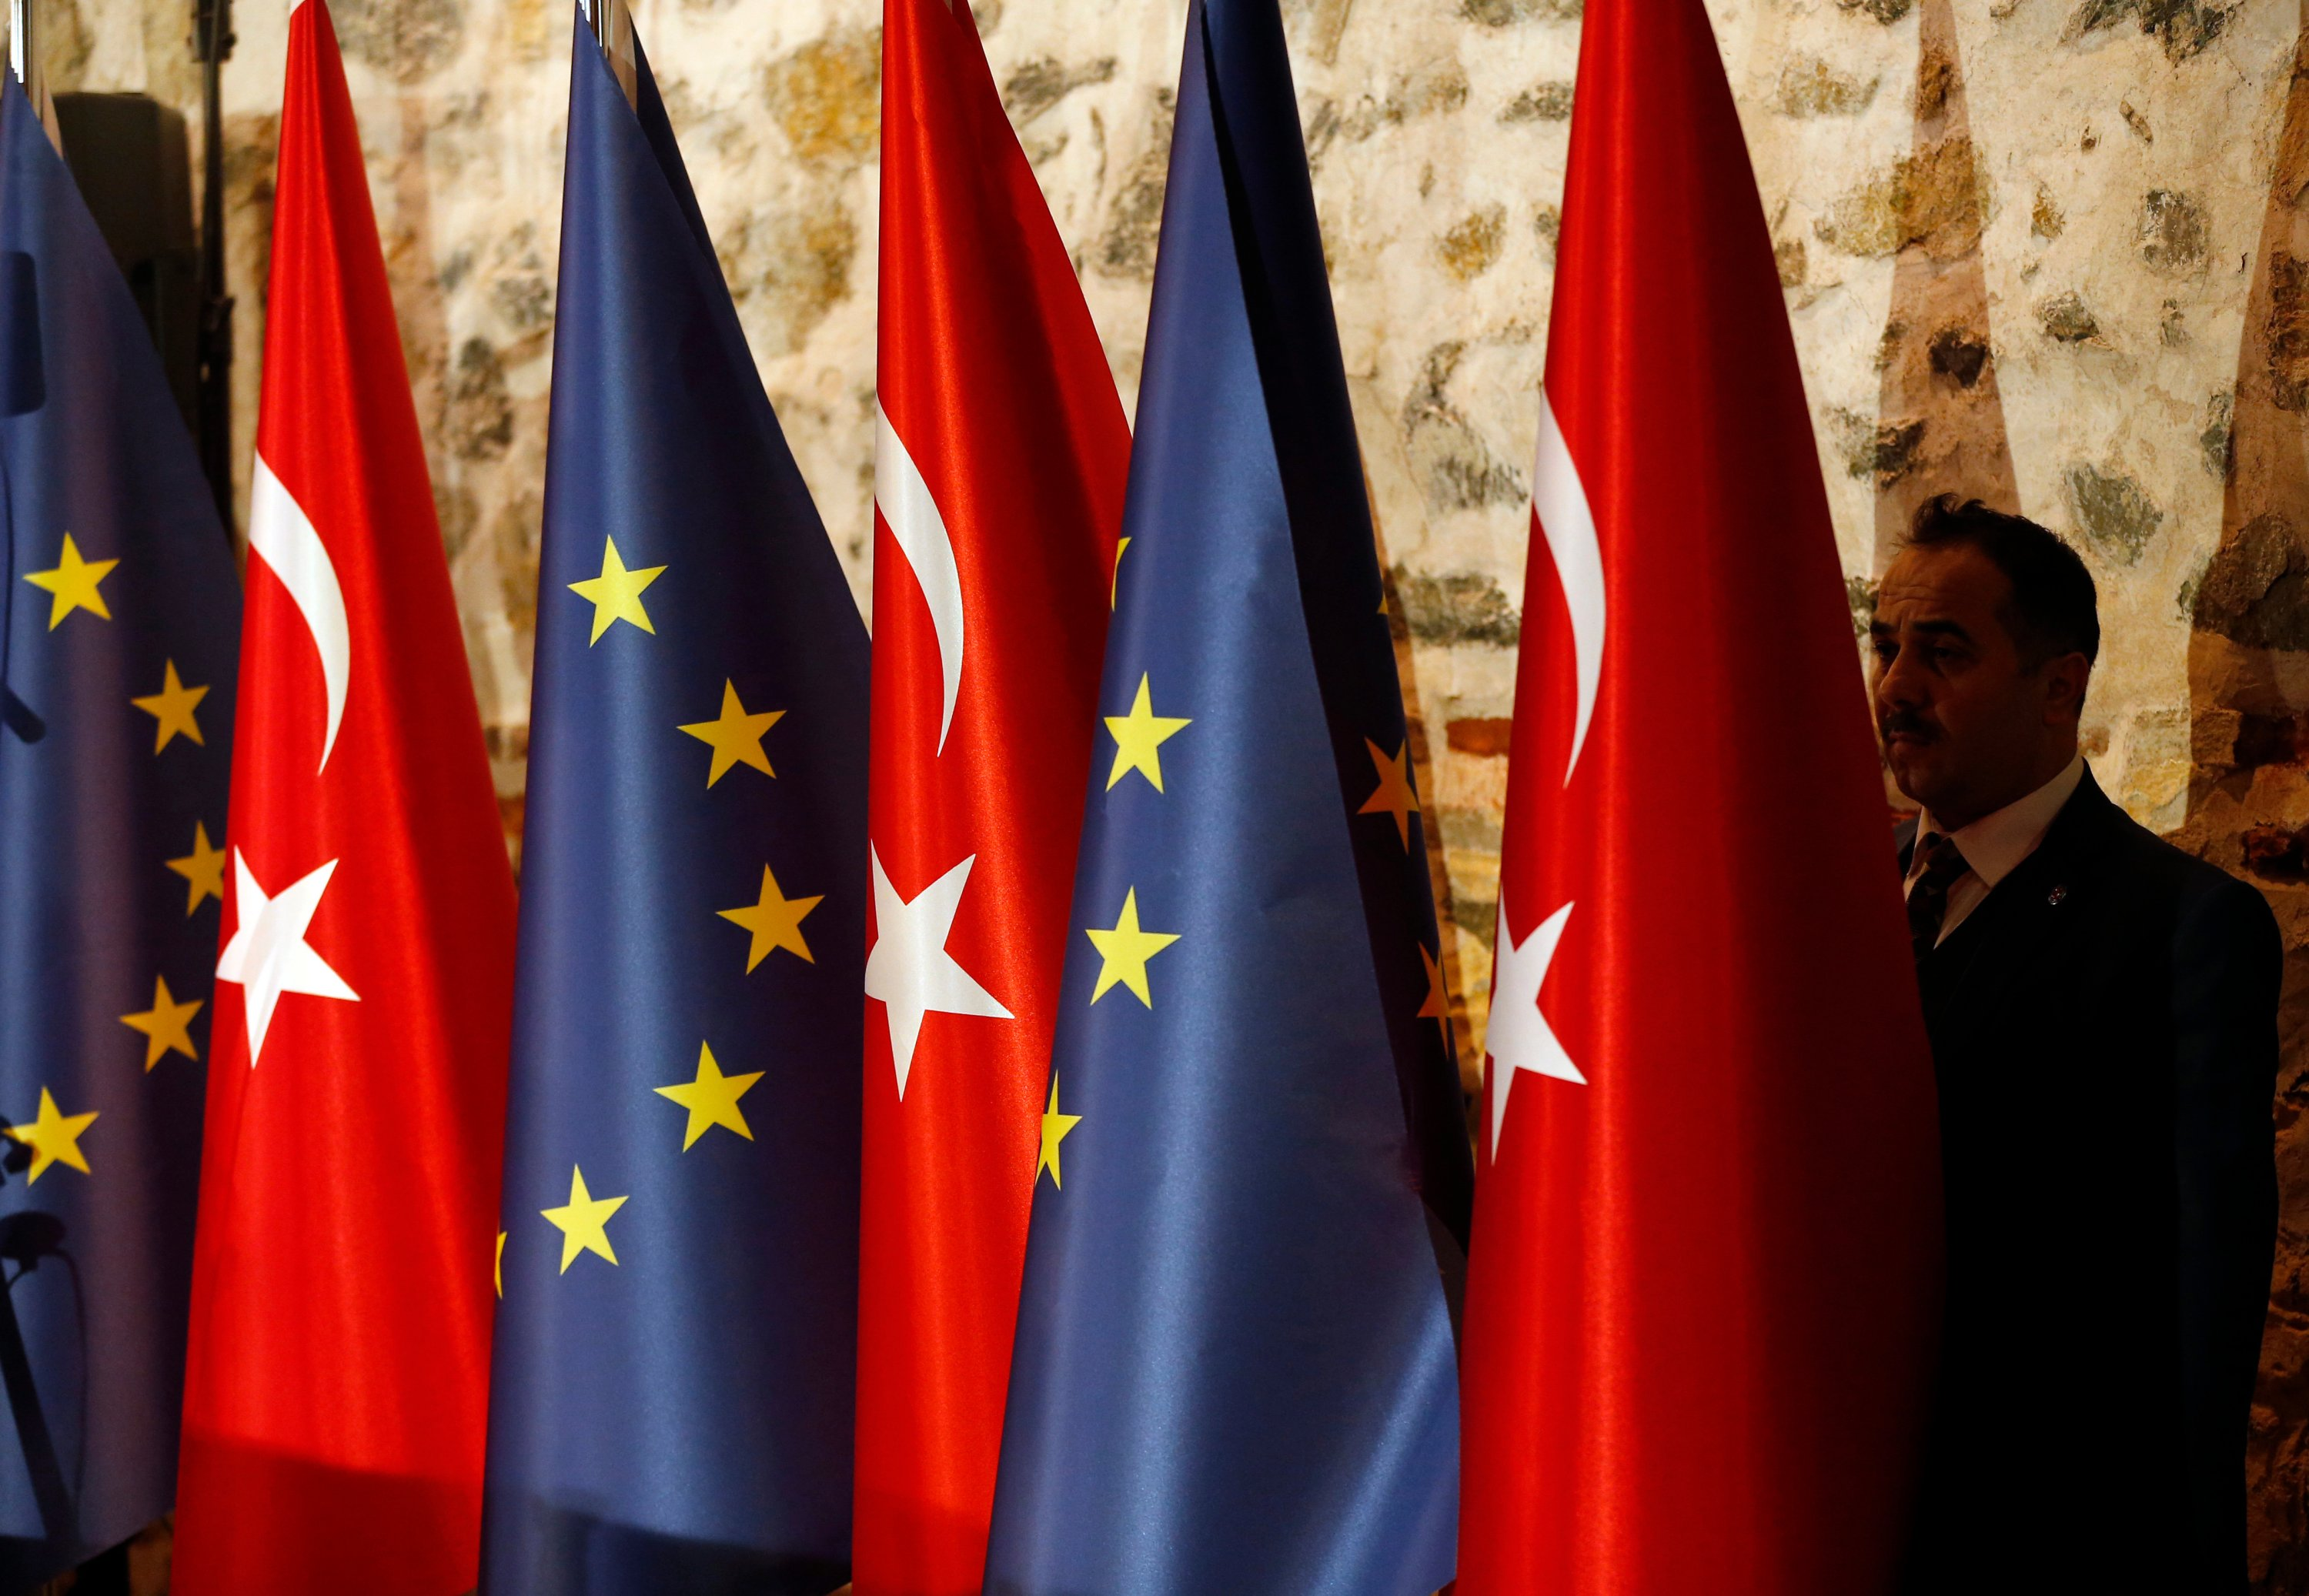 AK Party: Turkey expects improvement, institutional dialogue in ties with EU    Daily Sabah